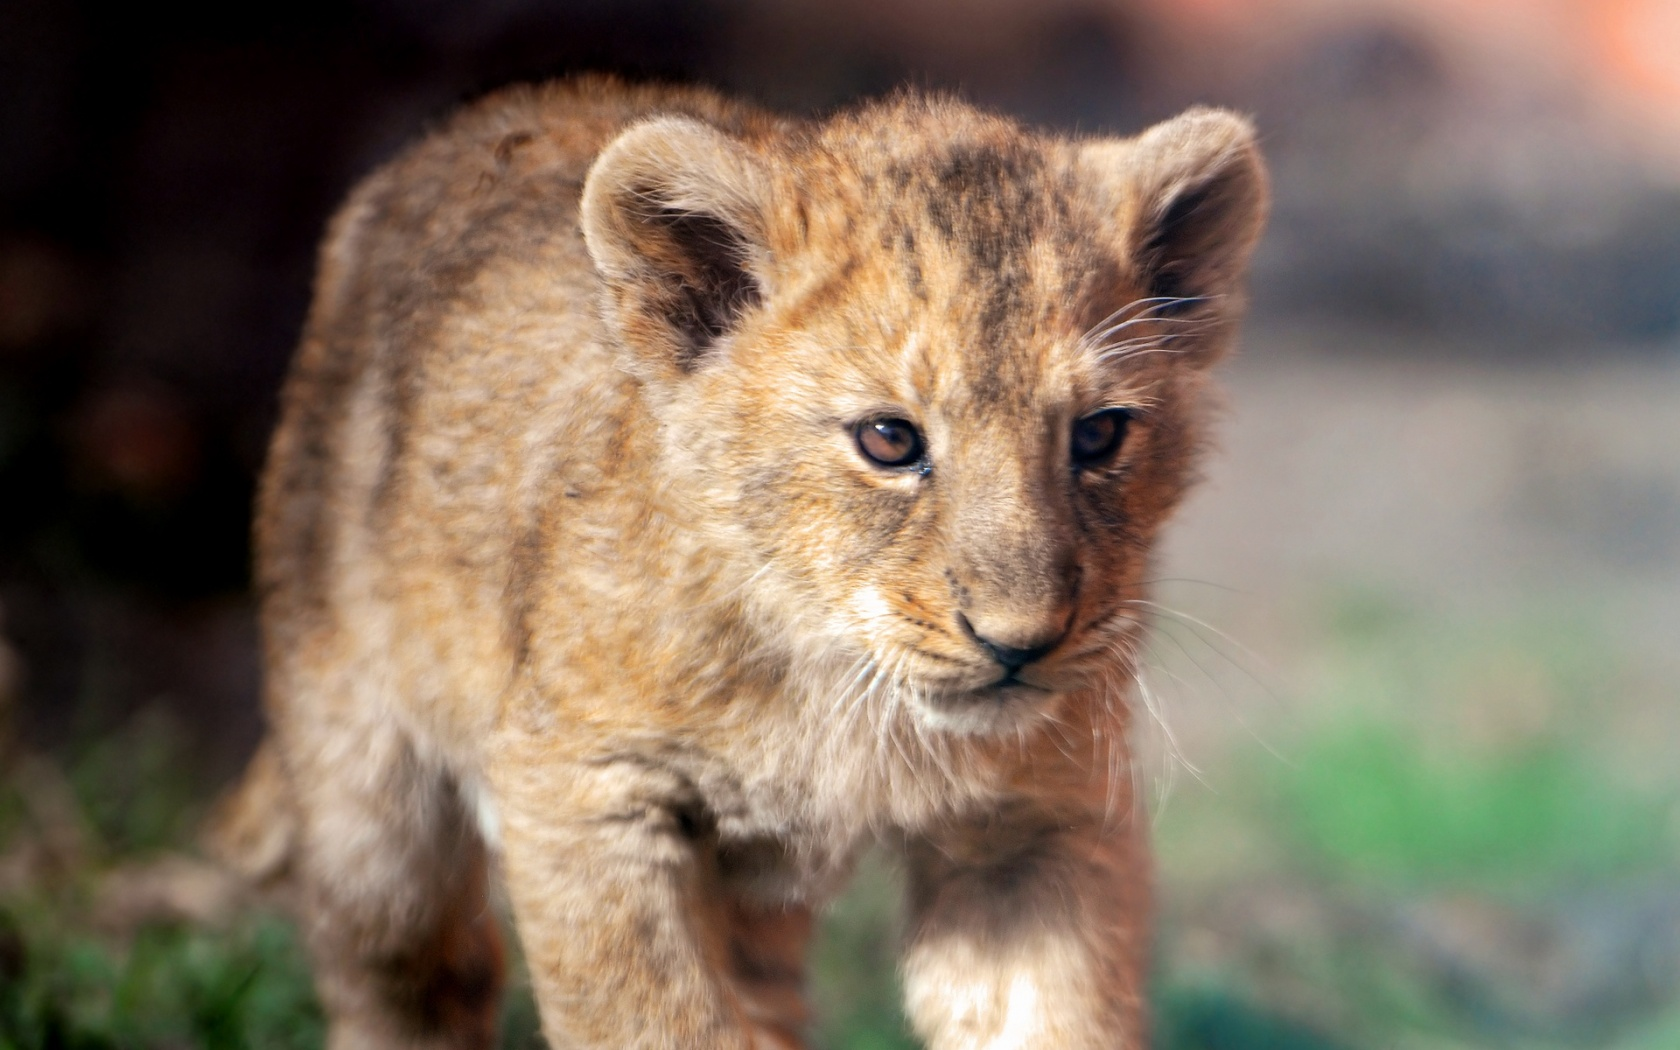 Lion cubs images Cute lion cub HD wallpaper and background photos